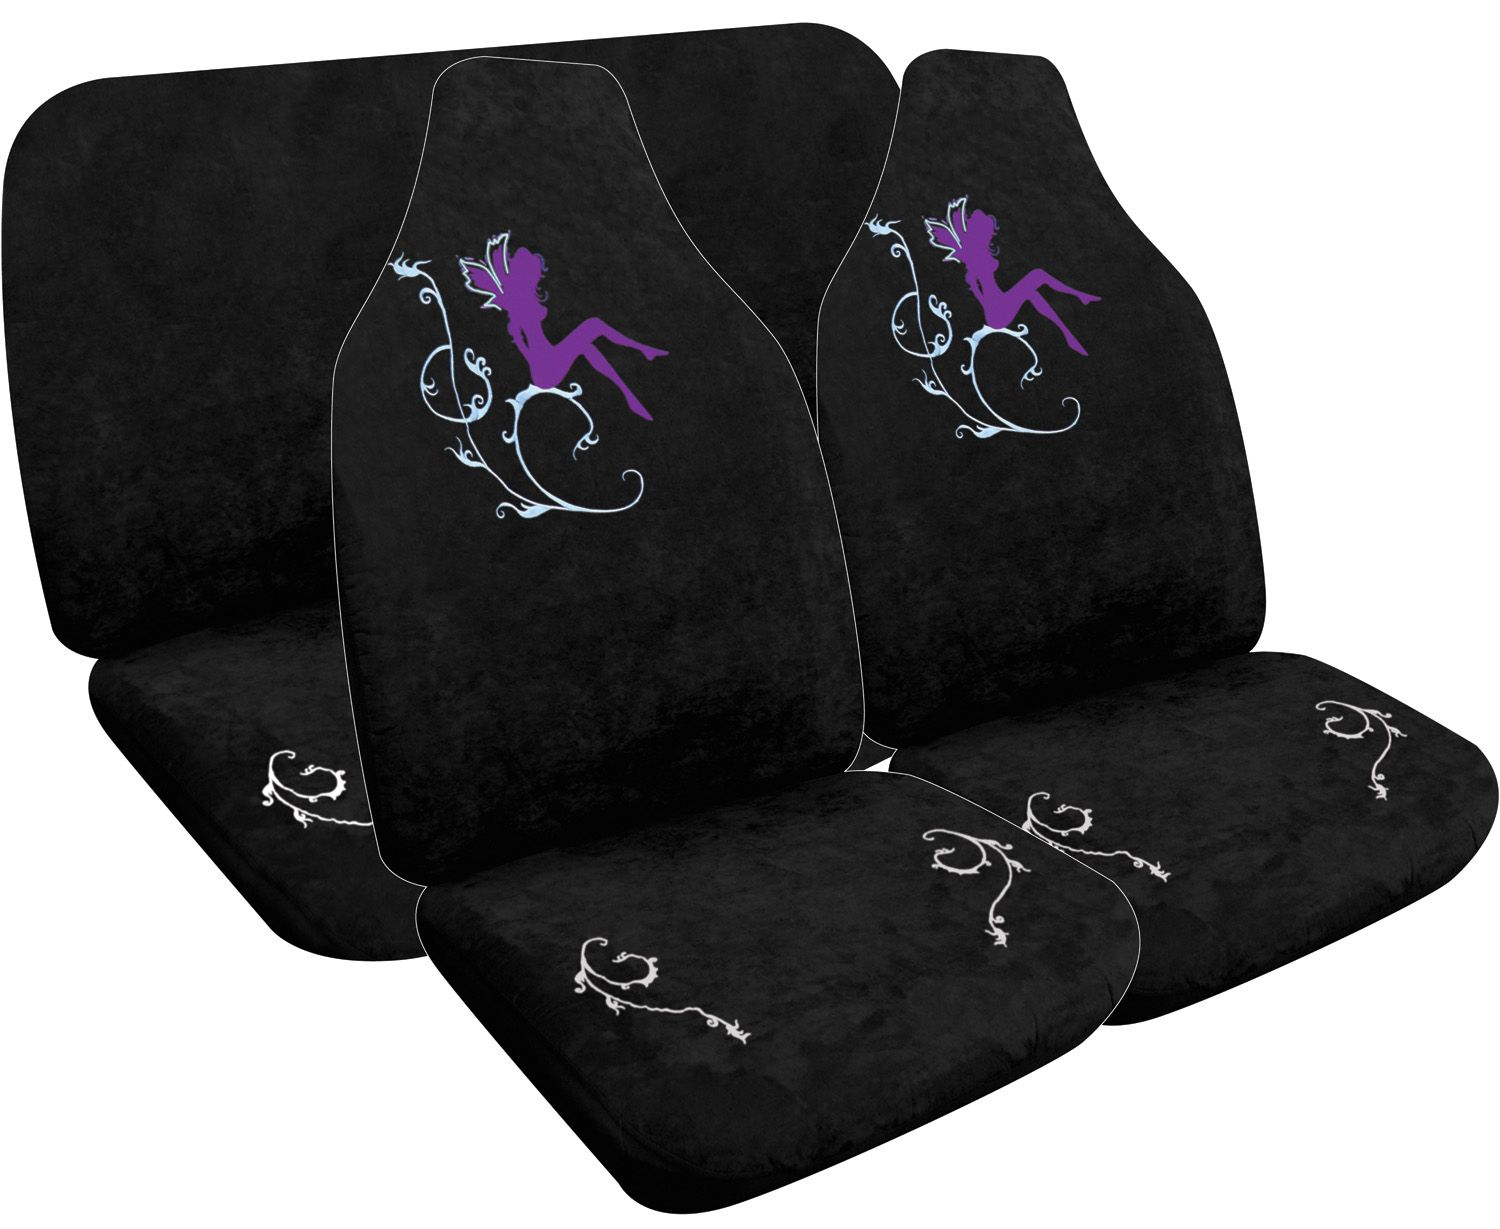 fairy seat covers for cars - Google Search | Vroom Vroom ...